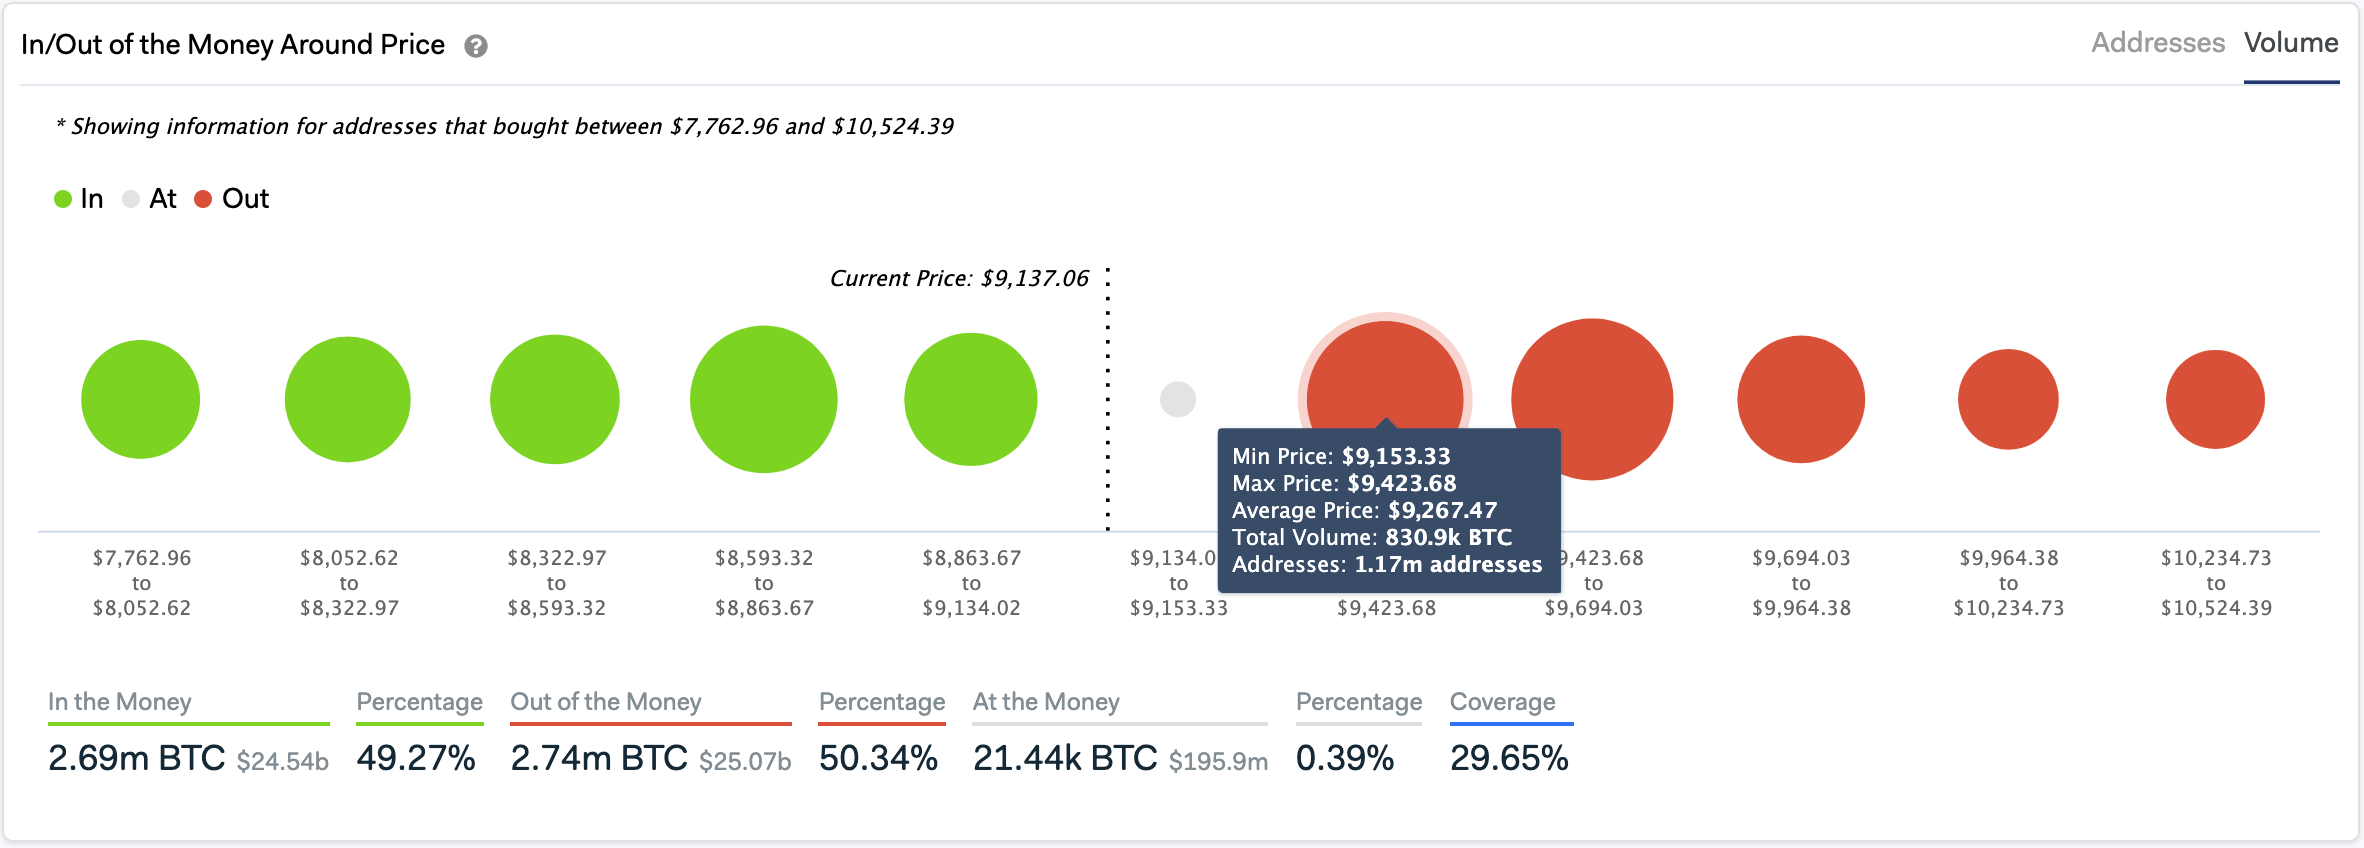 In/Out of the Money Around Price. (Source: IntoTheBlock)